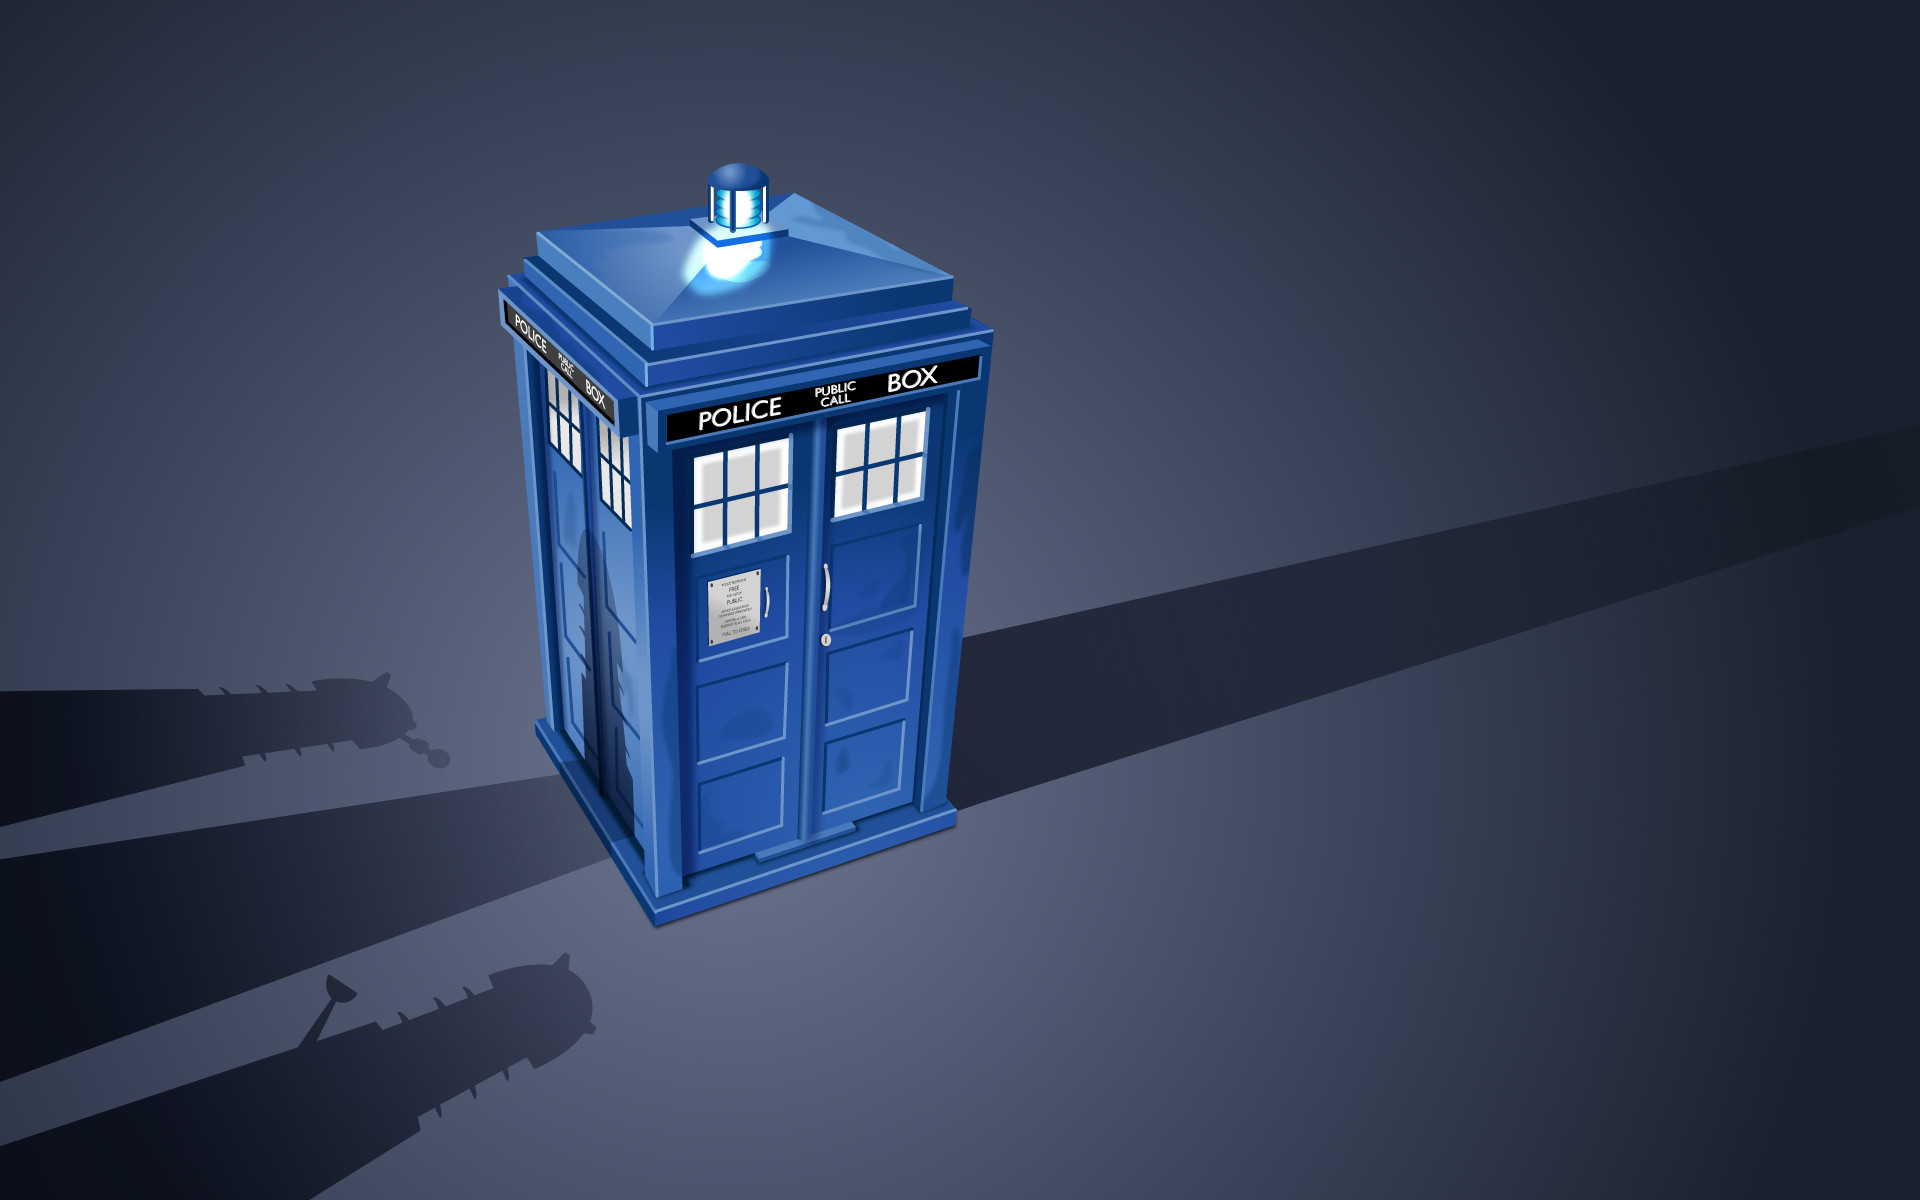 1920x1200 doctor who tardis wallpaper Doctor Who Full HD Wallpaper and Background  Image  ID:68679